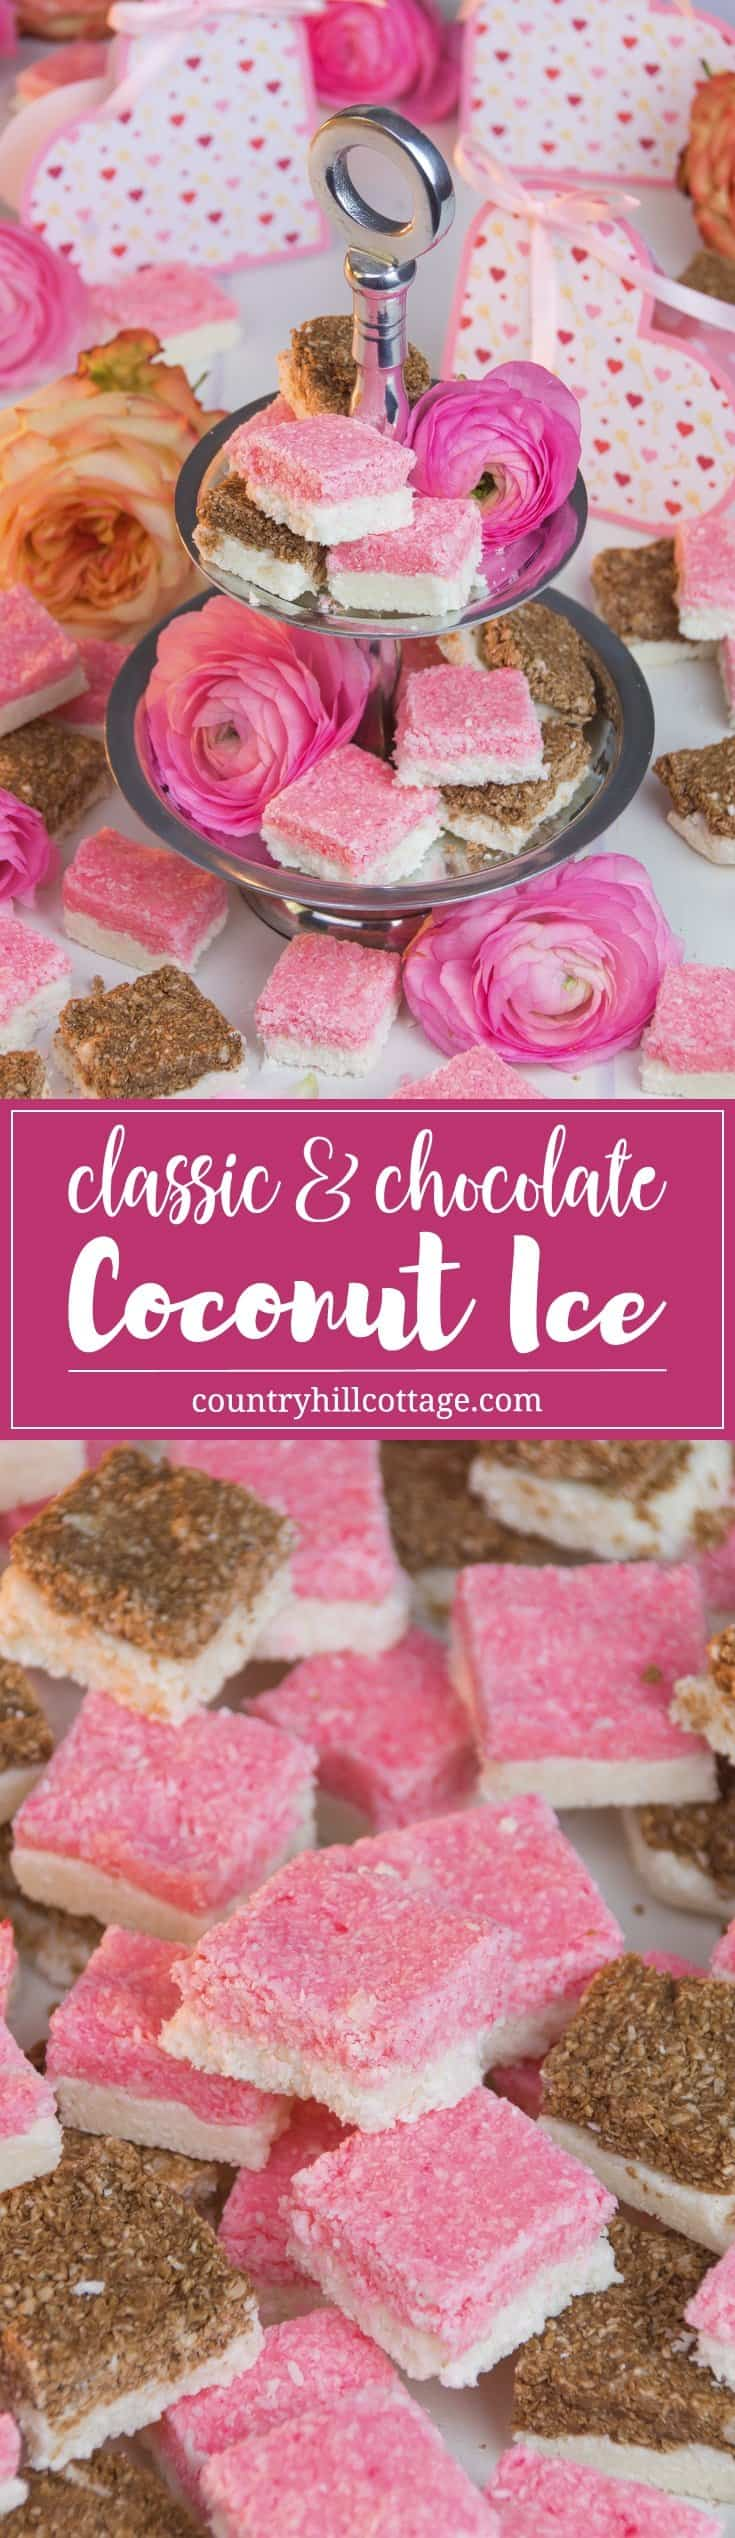 Homemade coconut ice is a sweet and easy-to-do treat, and great as wedding favours or gift for Valentine's Day. This classic British confection is made with desiccated coconut and sweetened condensed milk and has a soft and chewy texture. This recipe only requires mixing and chilling the ingredients, plus we share a chocolate version. #coconutice #candy #foodgift | countryhillcottage.com